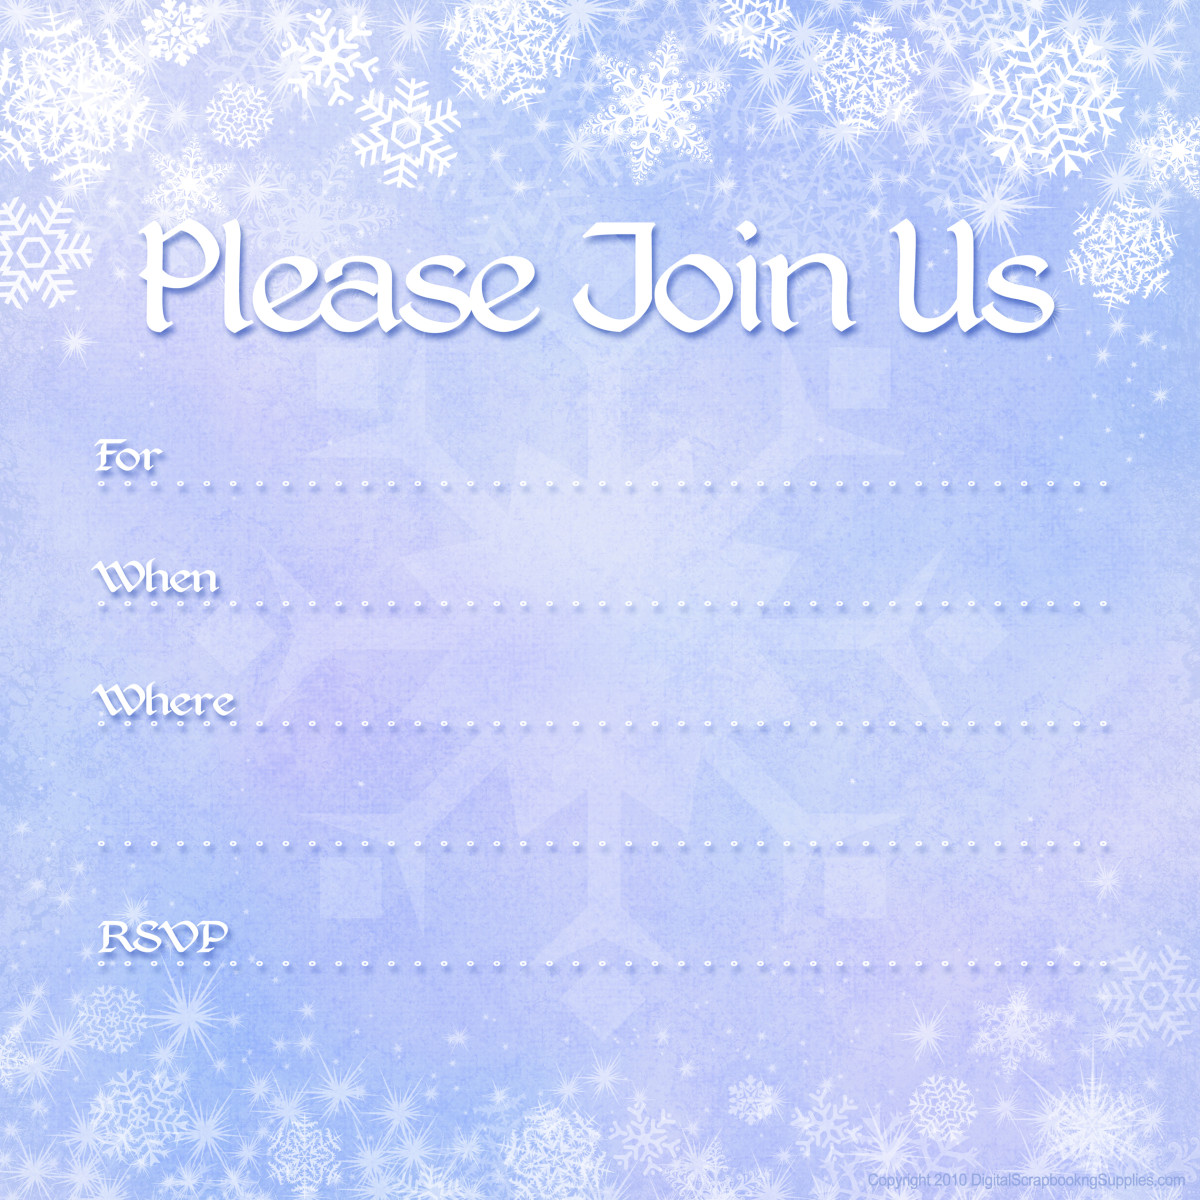 free winter invitations: snowflakes